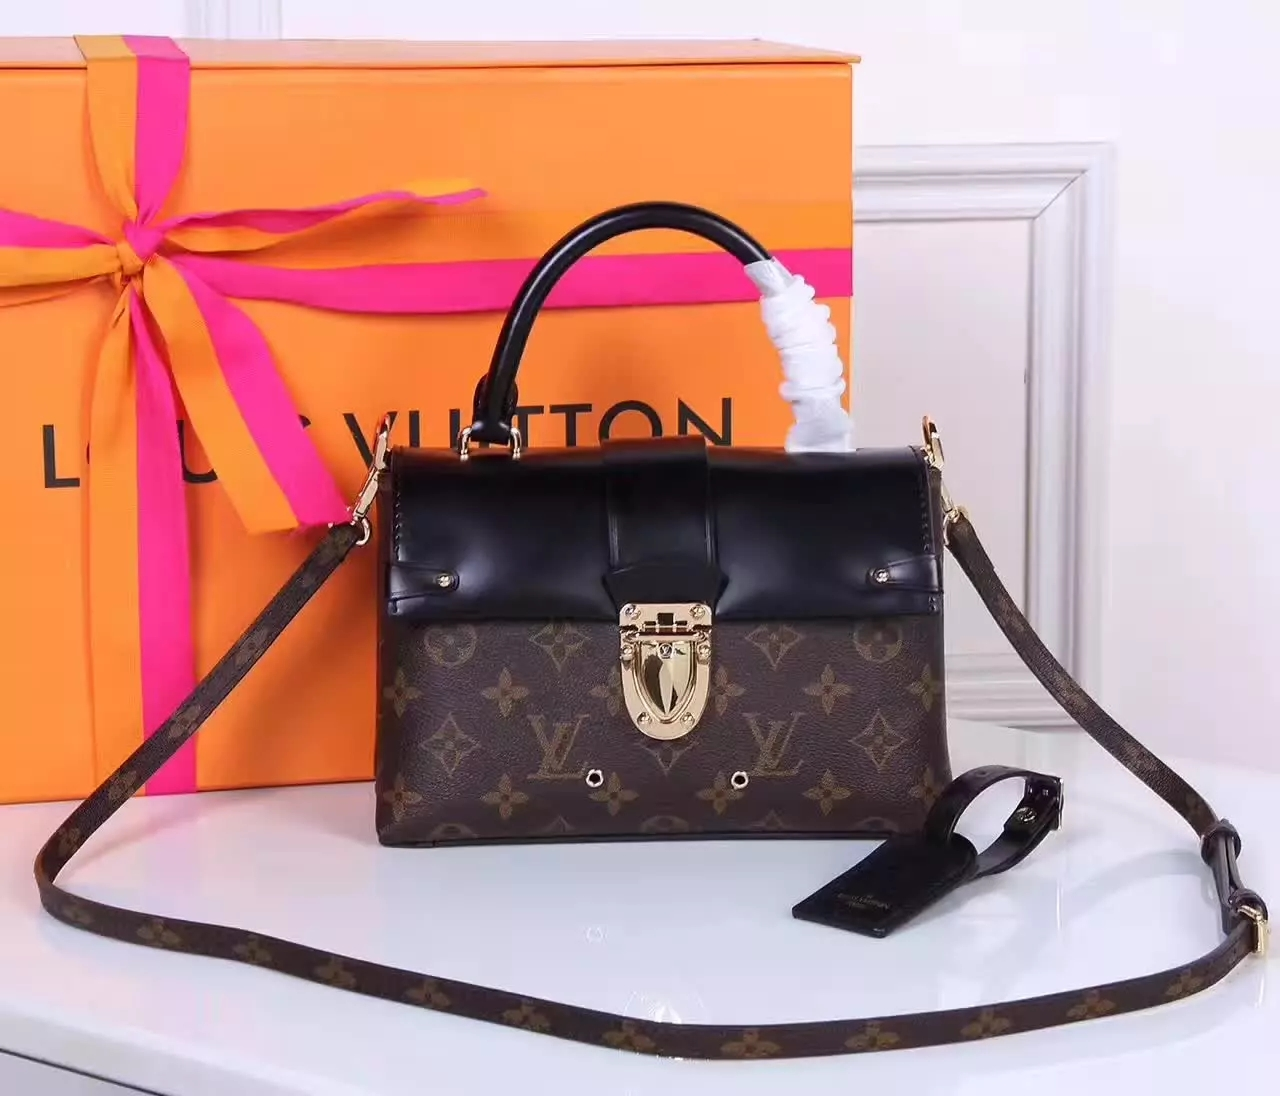 Louis Vuitton One Handle Flap Bag